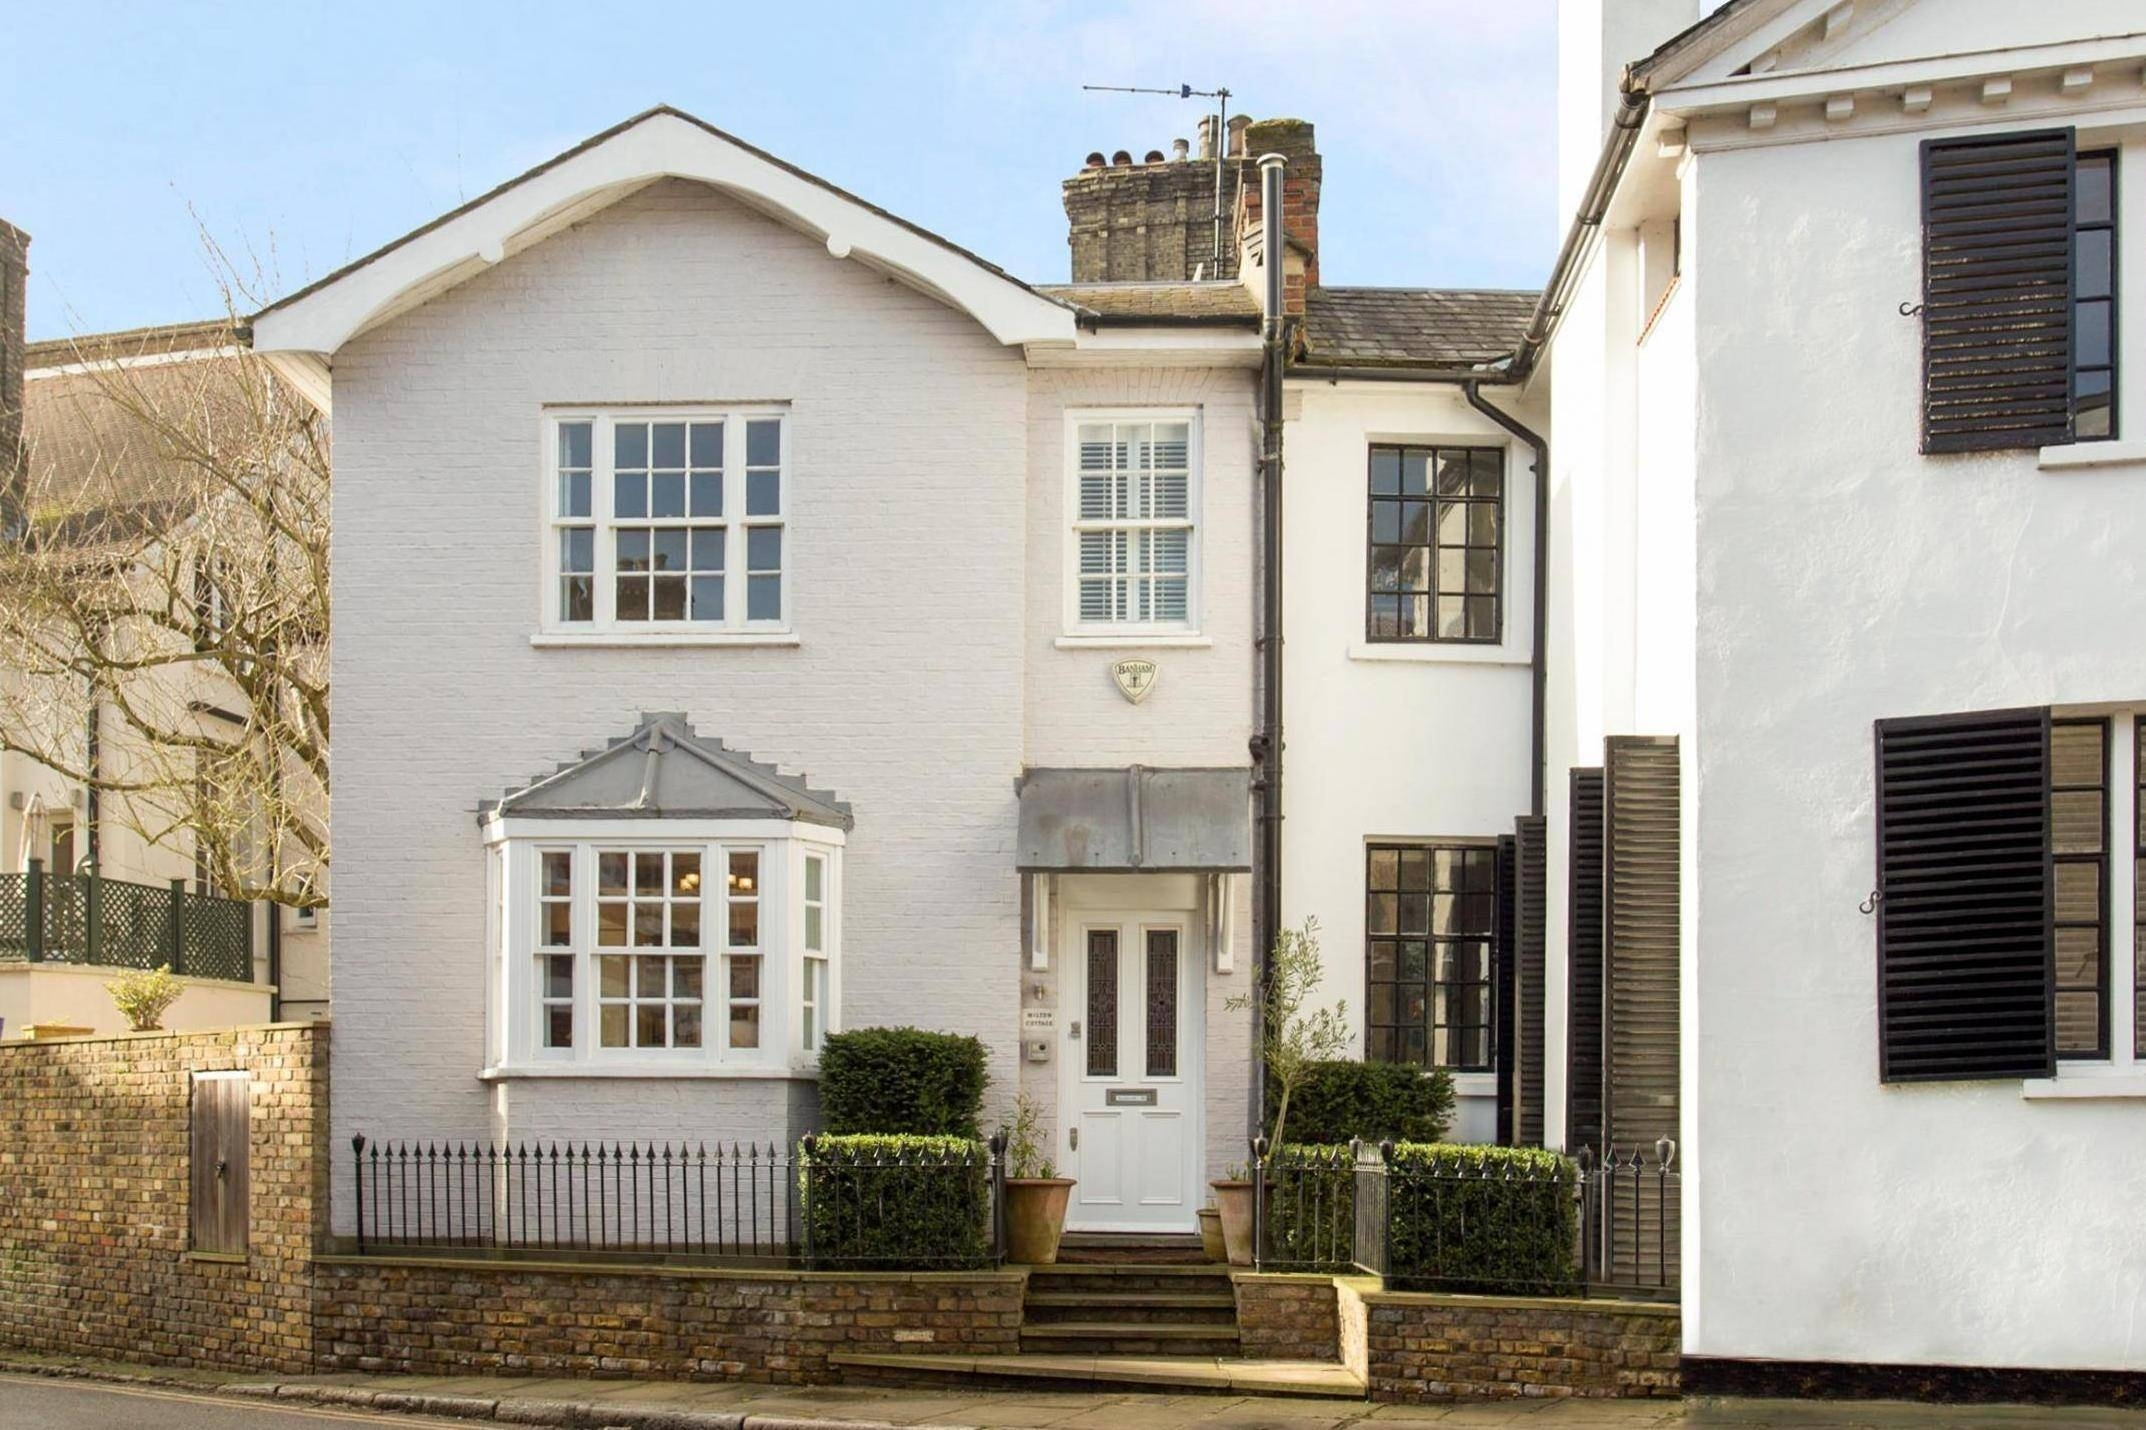 Liam Gallagher's Hampstead Oasis: Rocker's Former Vale Of Health with Garden House Vale Of Health